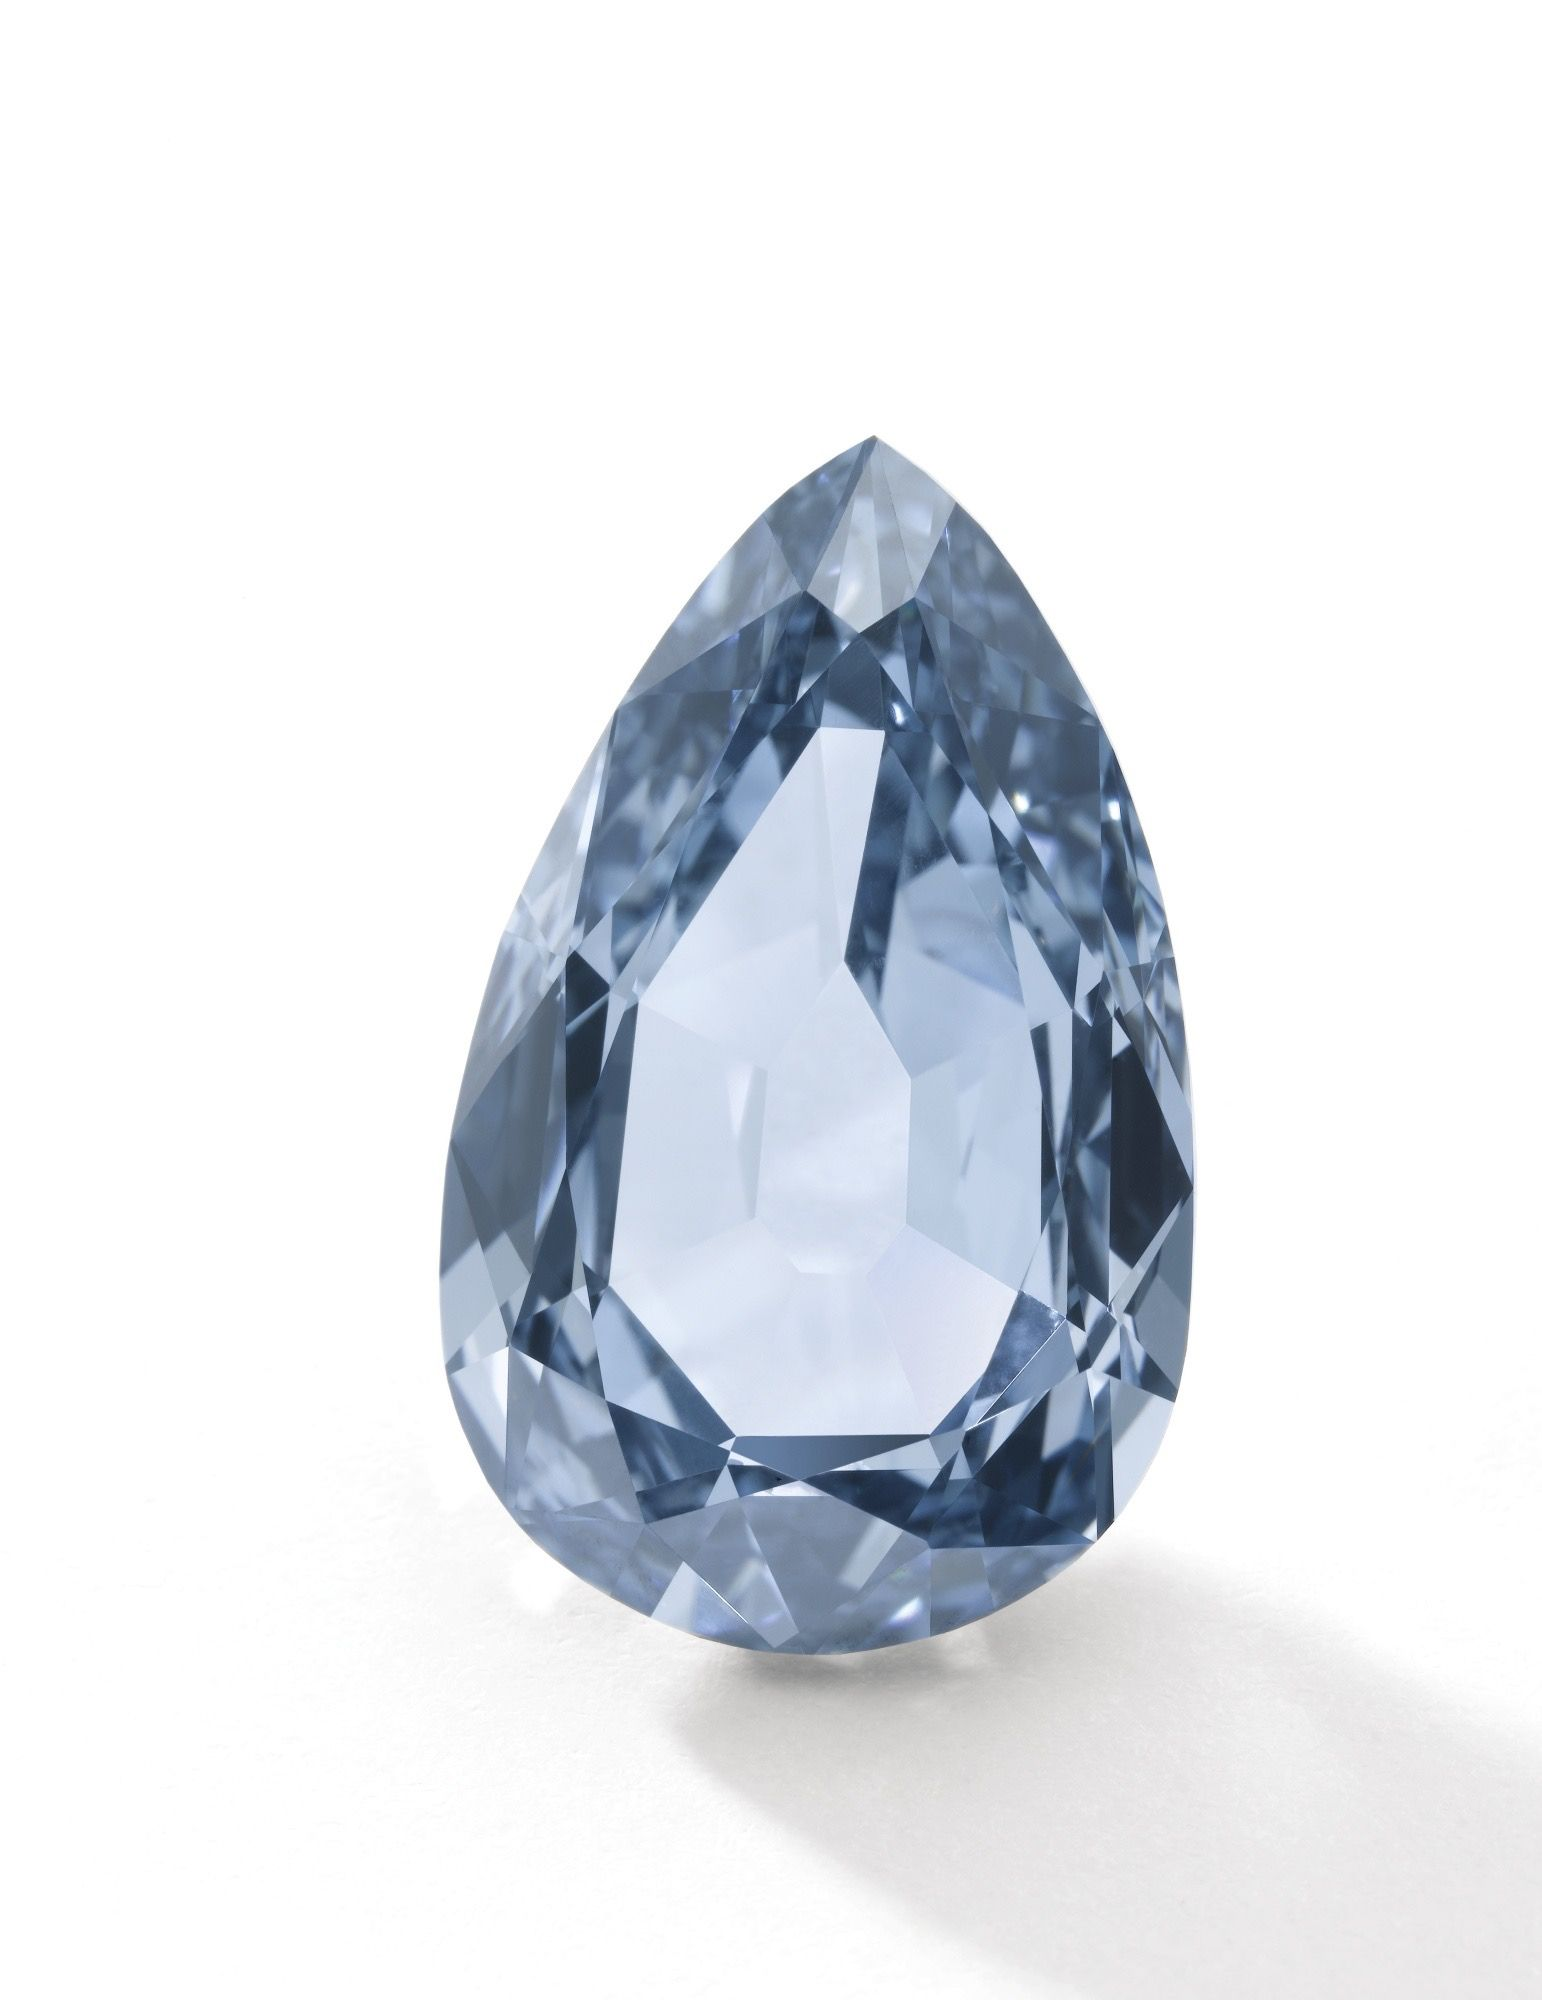 SUPERB FANCY VIVID BLUE DIAMOND RING. Set with a pear-shaped fancy vivid blue diamond of exceptional colour weighing 7.32 carats, size 51. Estimate 14,743,440 - 24,572,400 USD // LOT SOLD 17,112,629 USD. GIA / Fancy Vivid Blue, Natural Colour, Internally Flawless. (The distinctive blue colour in diamonds is attributed to trace amounts of the element boron in the crystal structure) [S. GE. - 17 MAY 2016] #Sotheby's #Auction #FancyVividBlue #Diamond